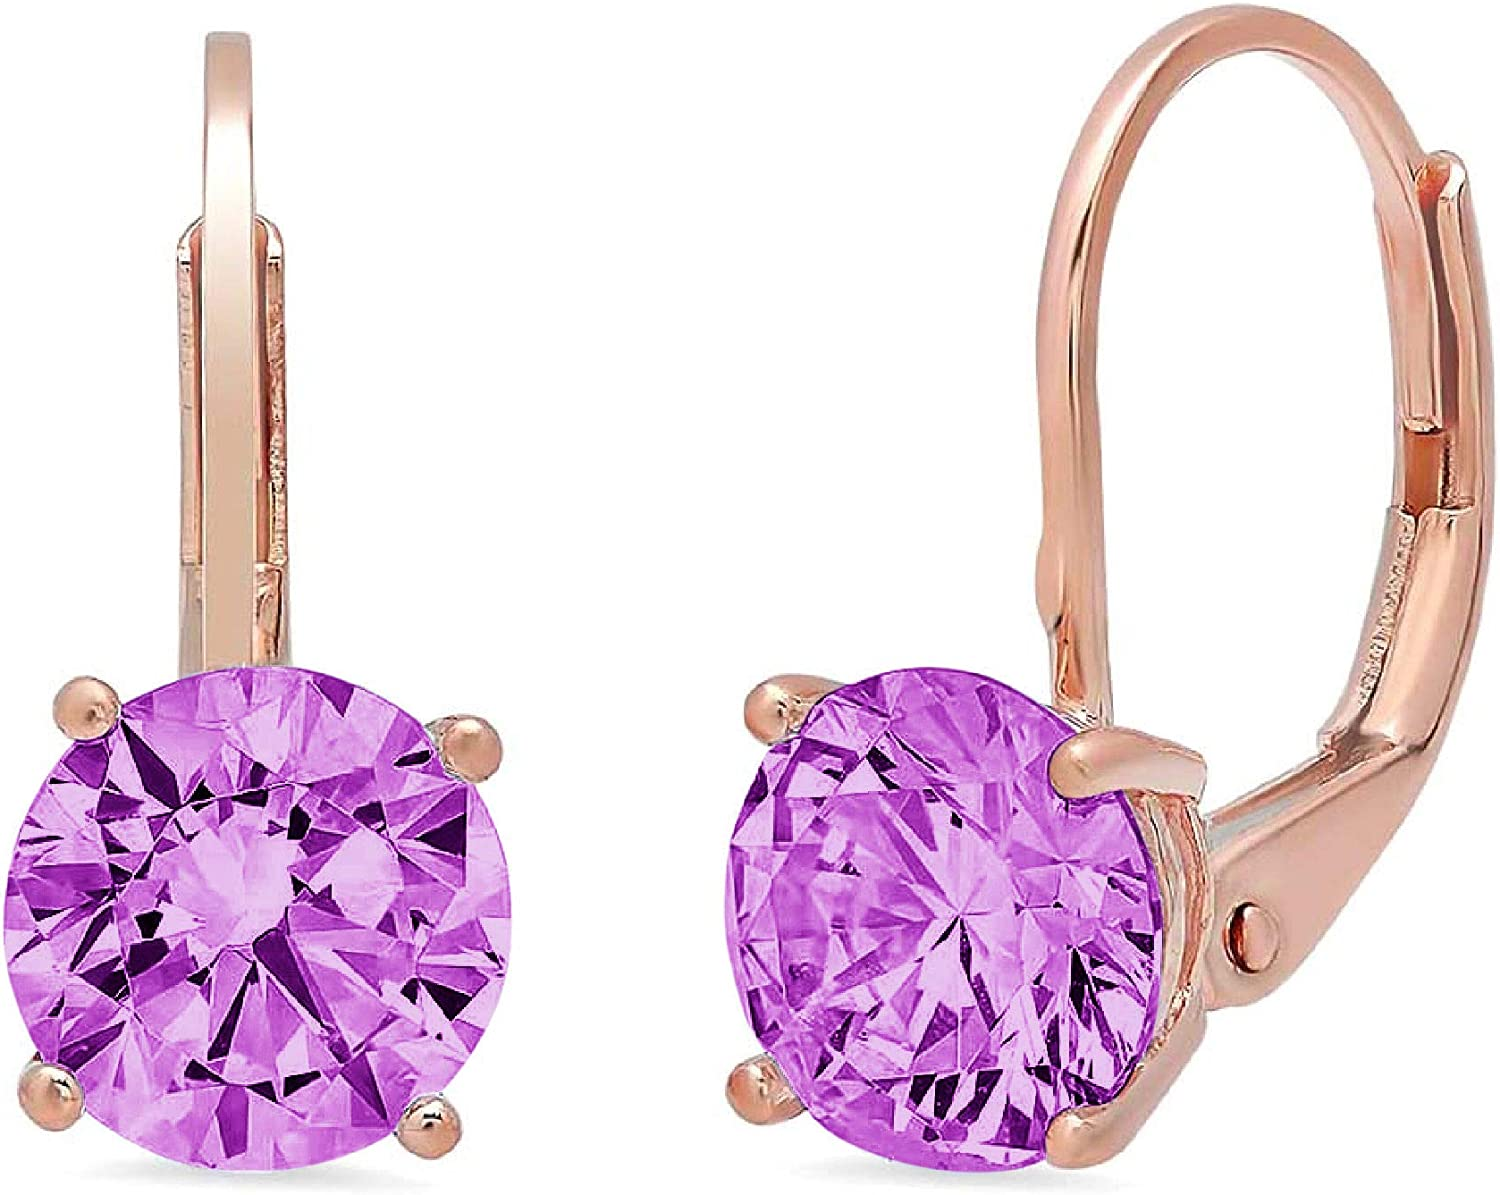 2.9ct Brilliant Round Cut Solitaire Flawless Genuine Simulated CZ Purple Alexandrite Gemstone Unisex Pair of Lever back Drop Dangle Designer Earrings Solid 14k Yellow Back conflict free Jewelry